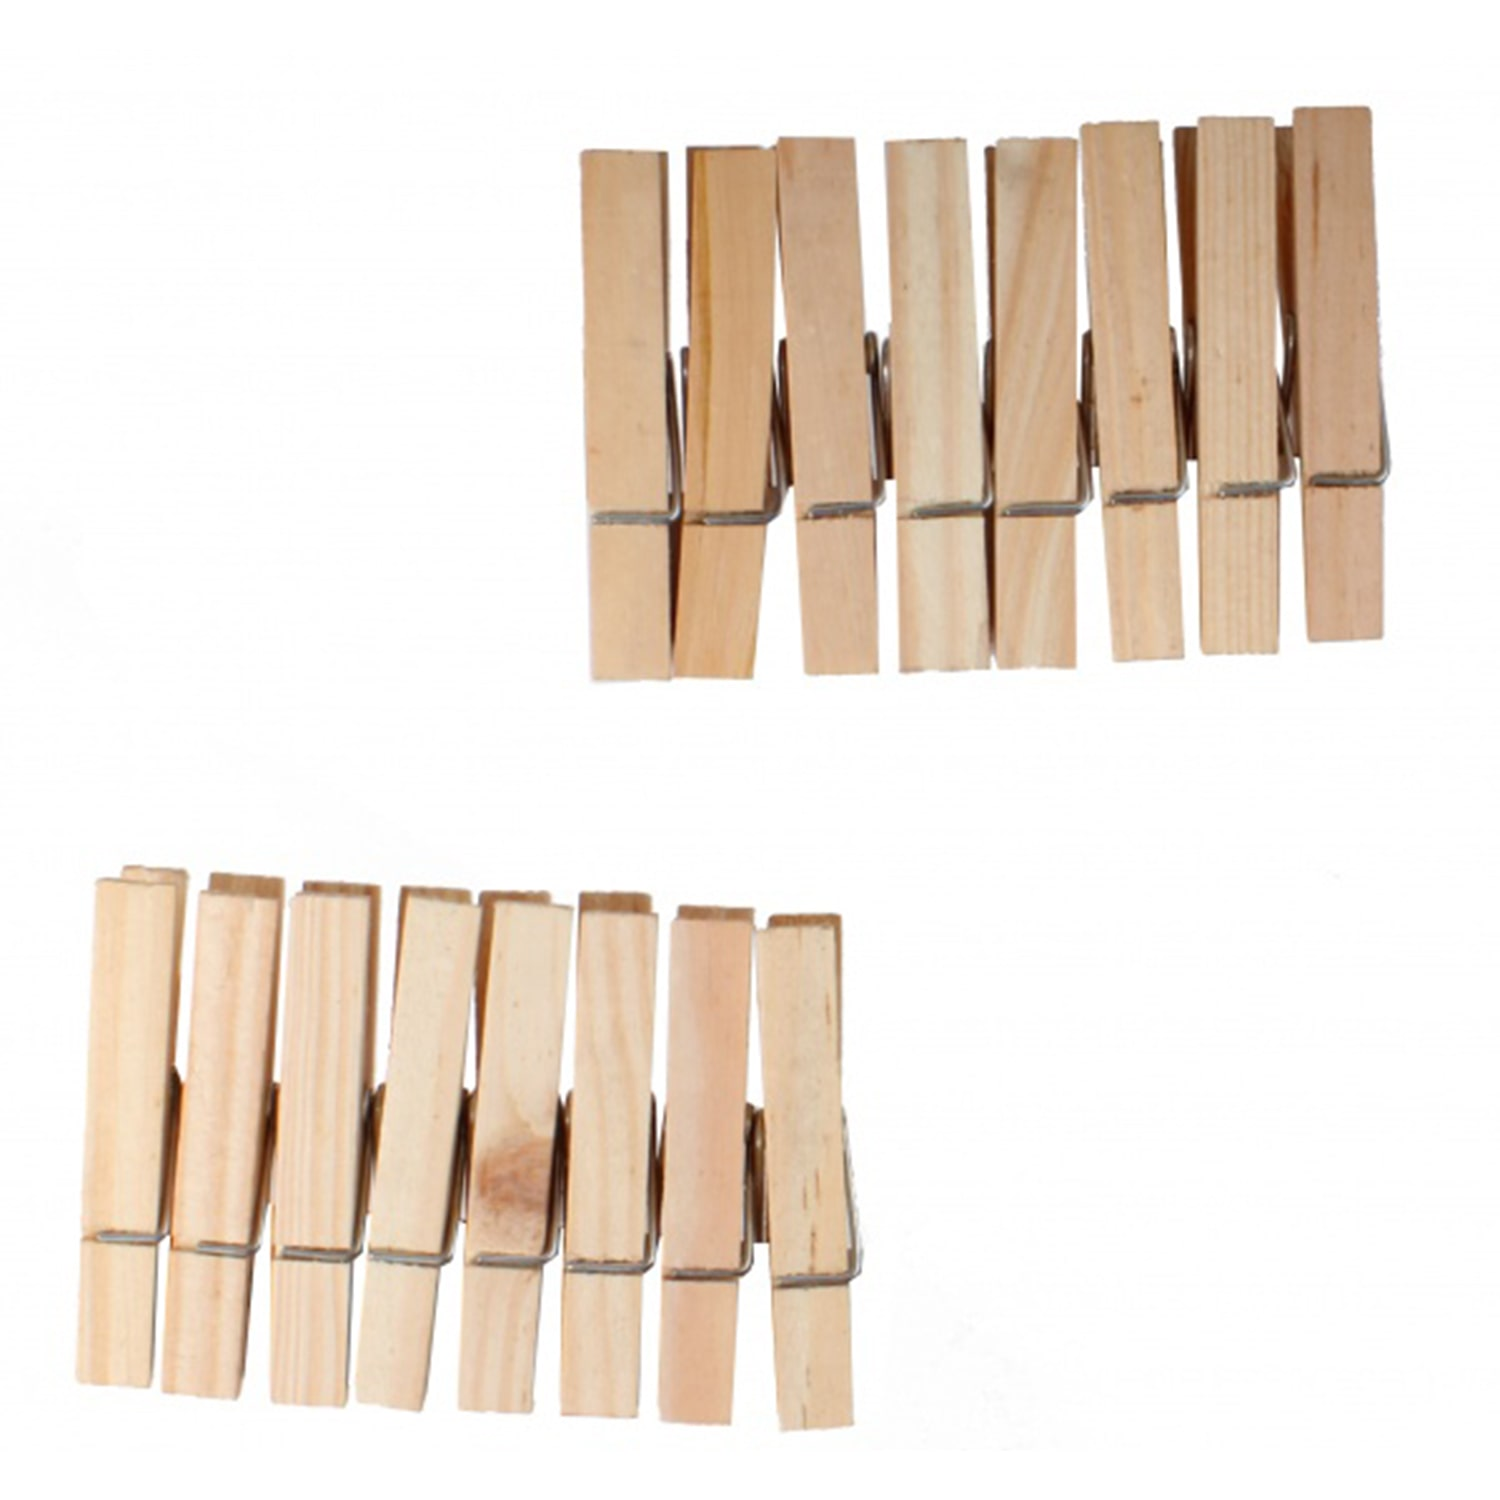 16 Wooden Pegs Mary Shortle